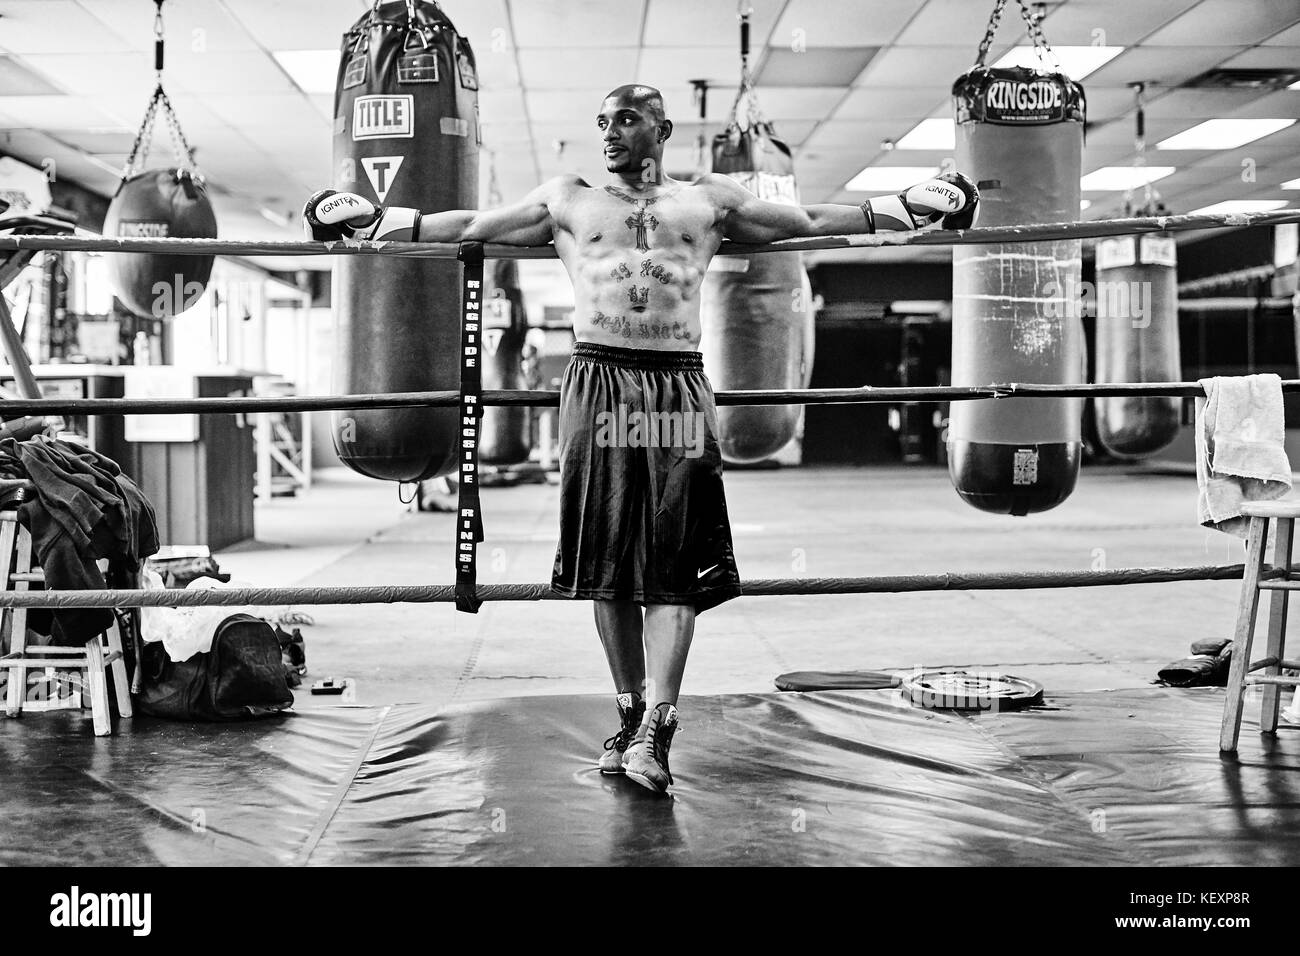 Portrait of male boxer leaning on boxing ring ropes and looking away, Taunton, Massachusetts, USA - Stock Image